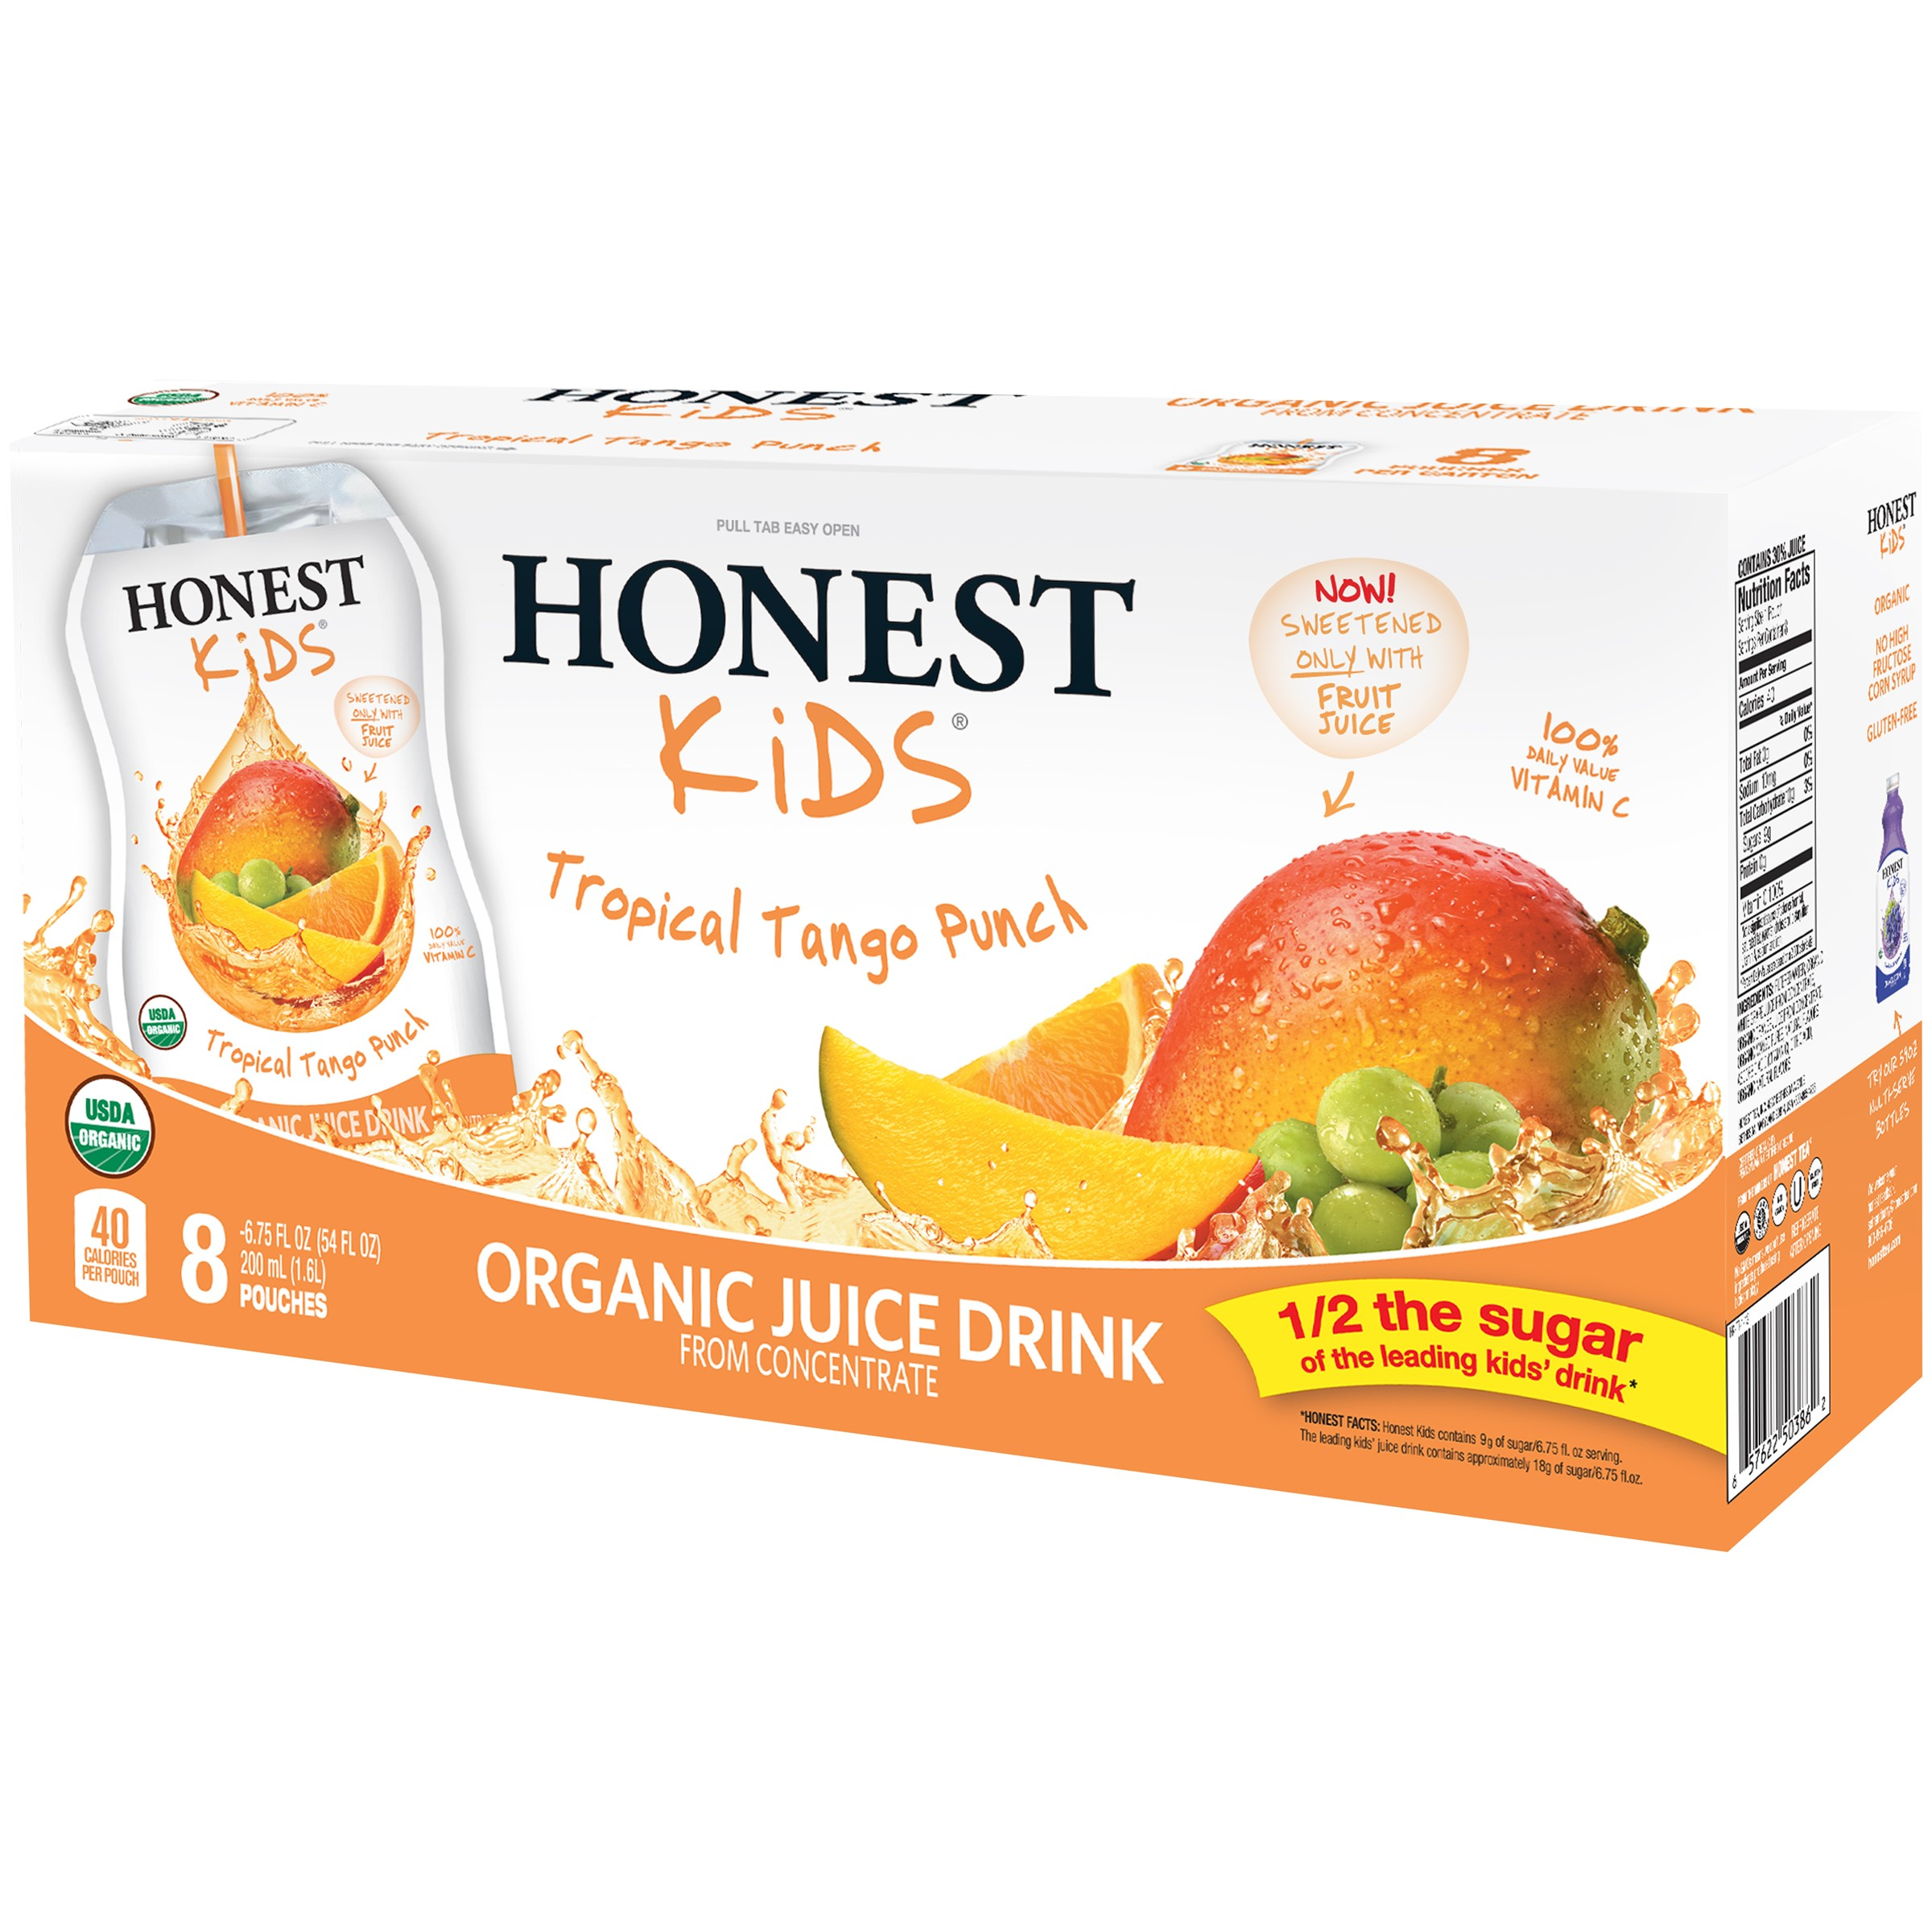 Honest Kids Organic Juice, Tropical Tango Punch, 6.75 Fl Oz 8 Ct